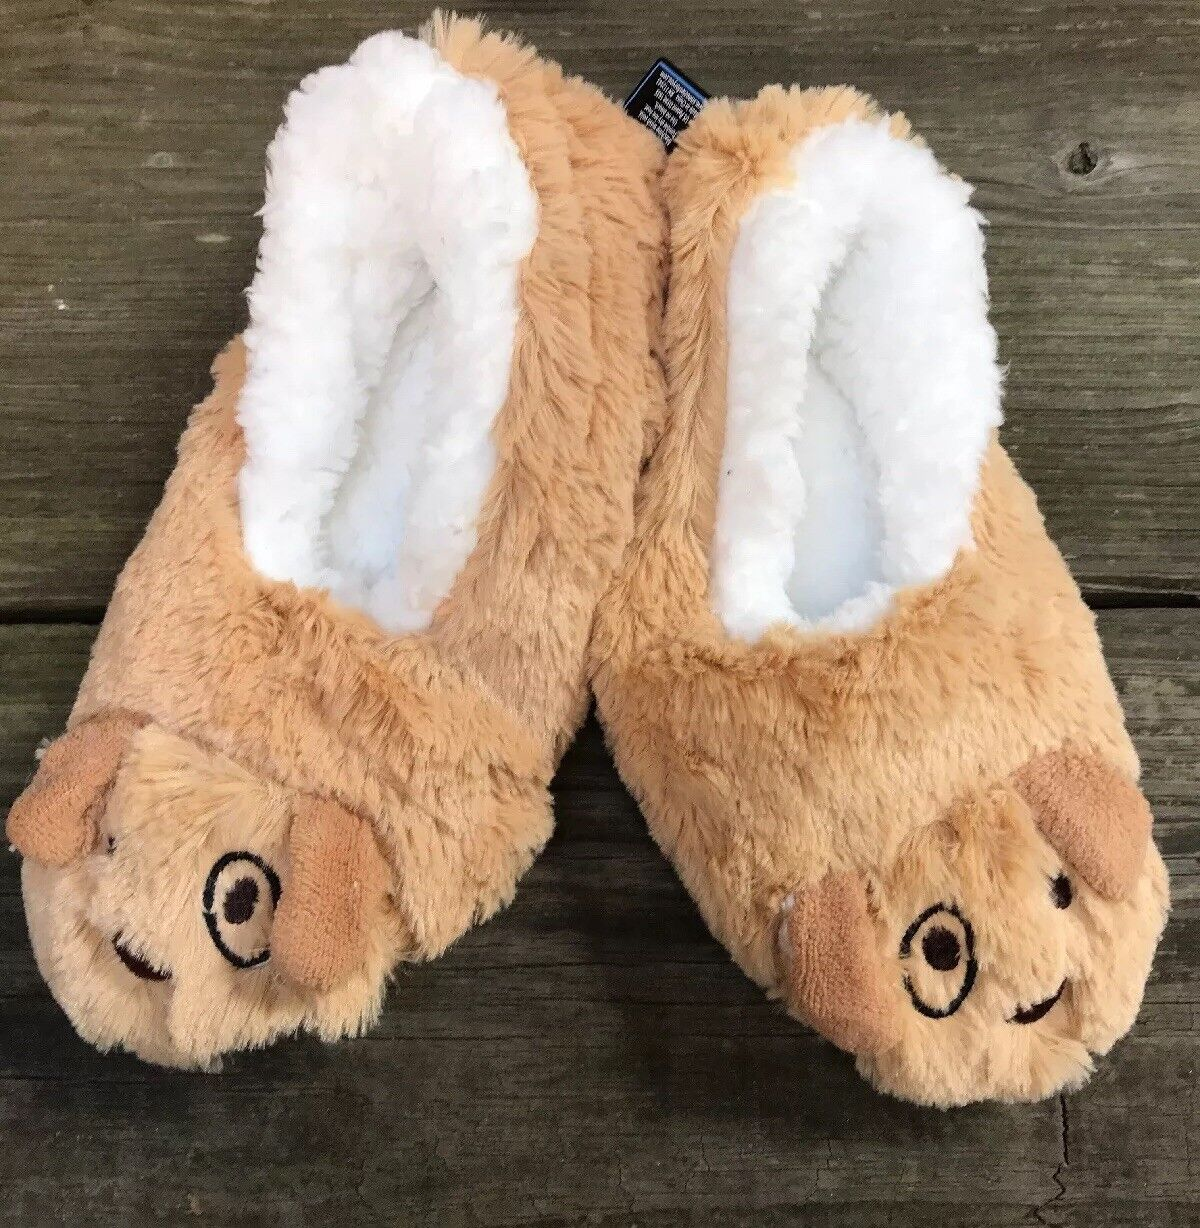 L 9-10 Snoozies Tan Puppy Dog Soft Slippers Shoes Foot Coverings Women NEW